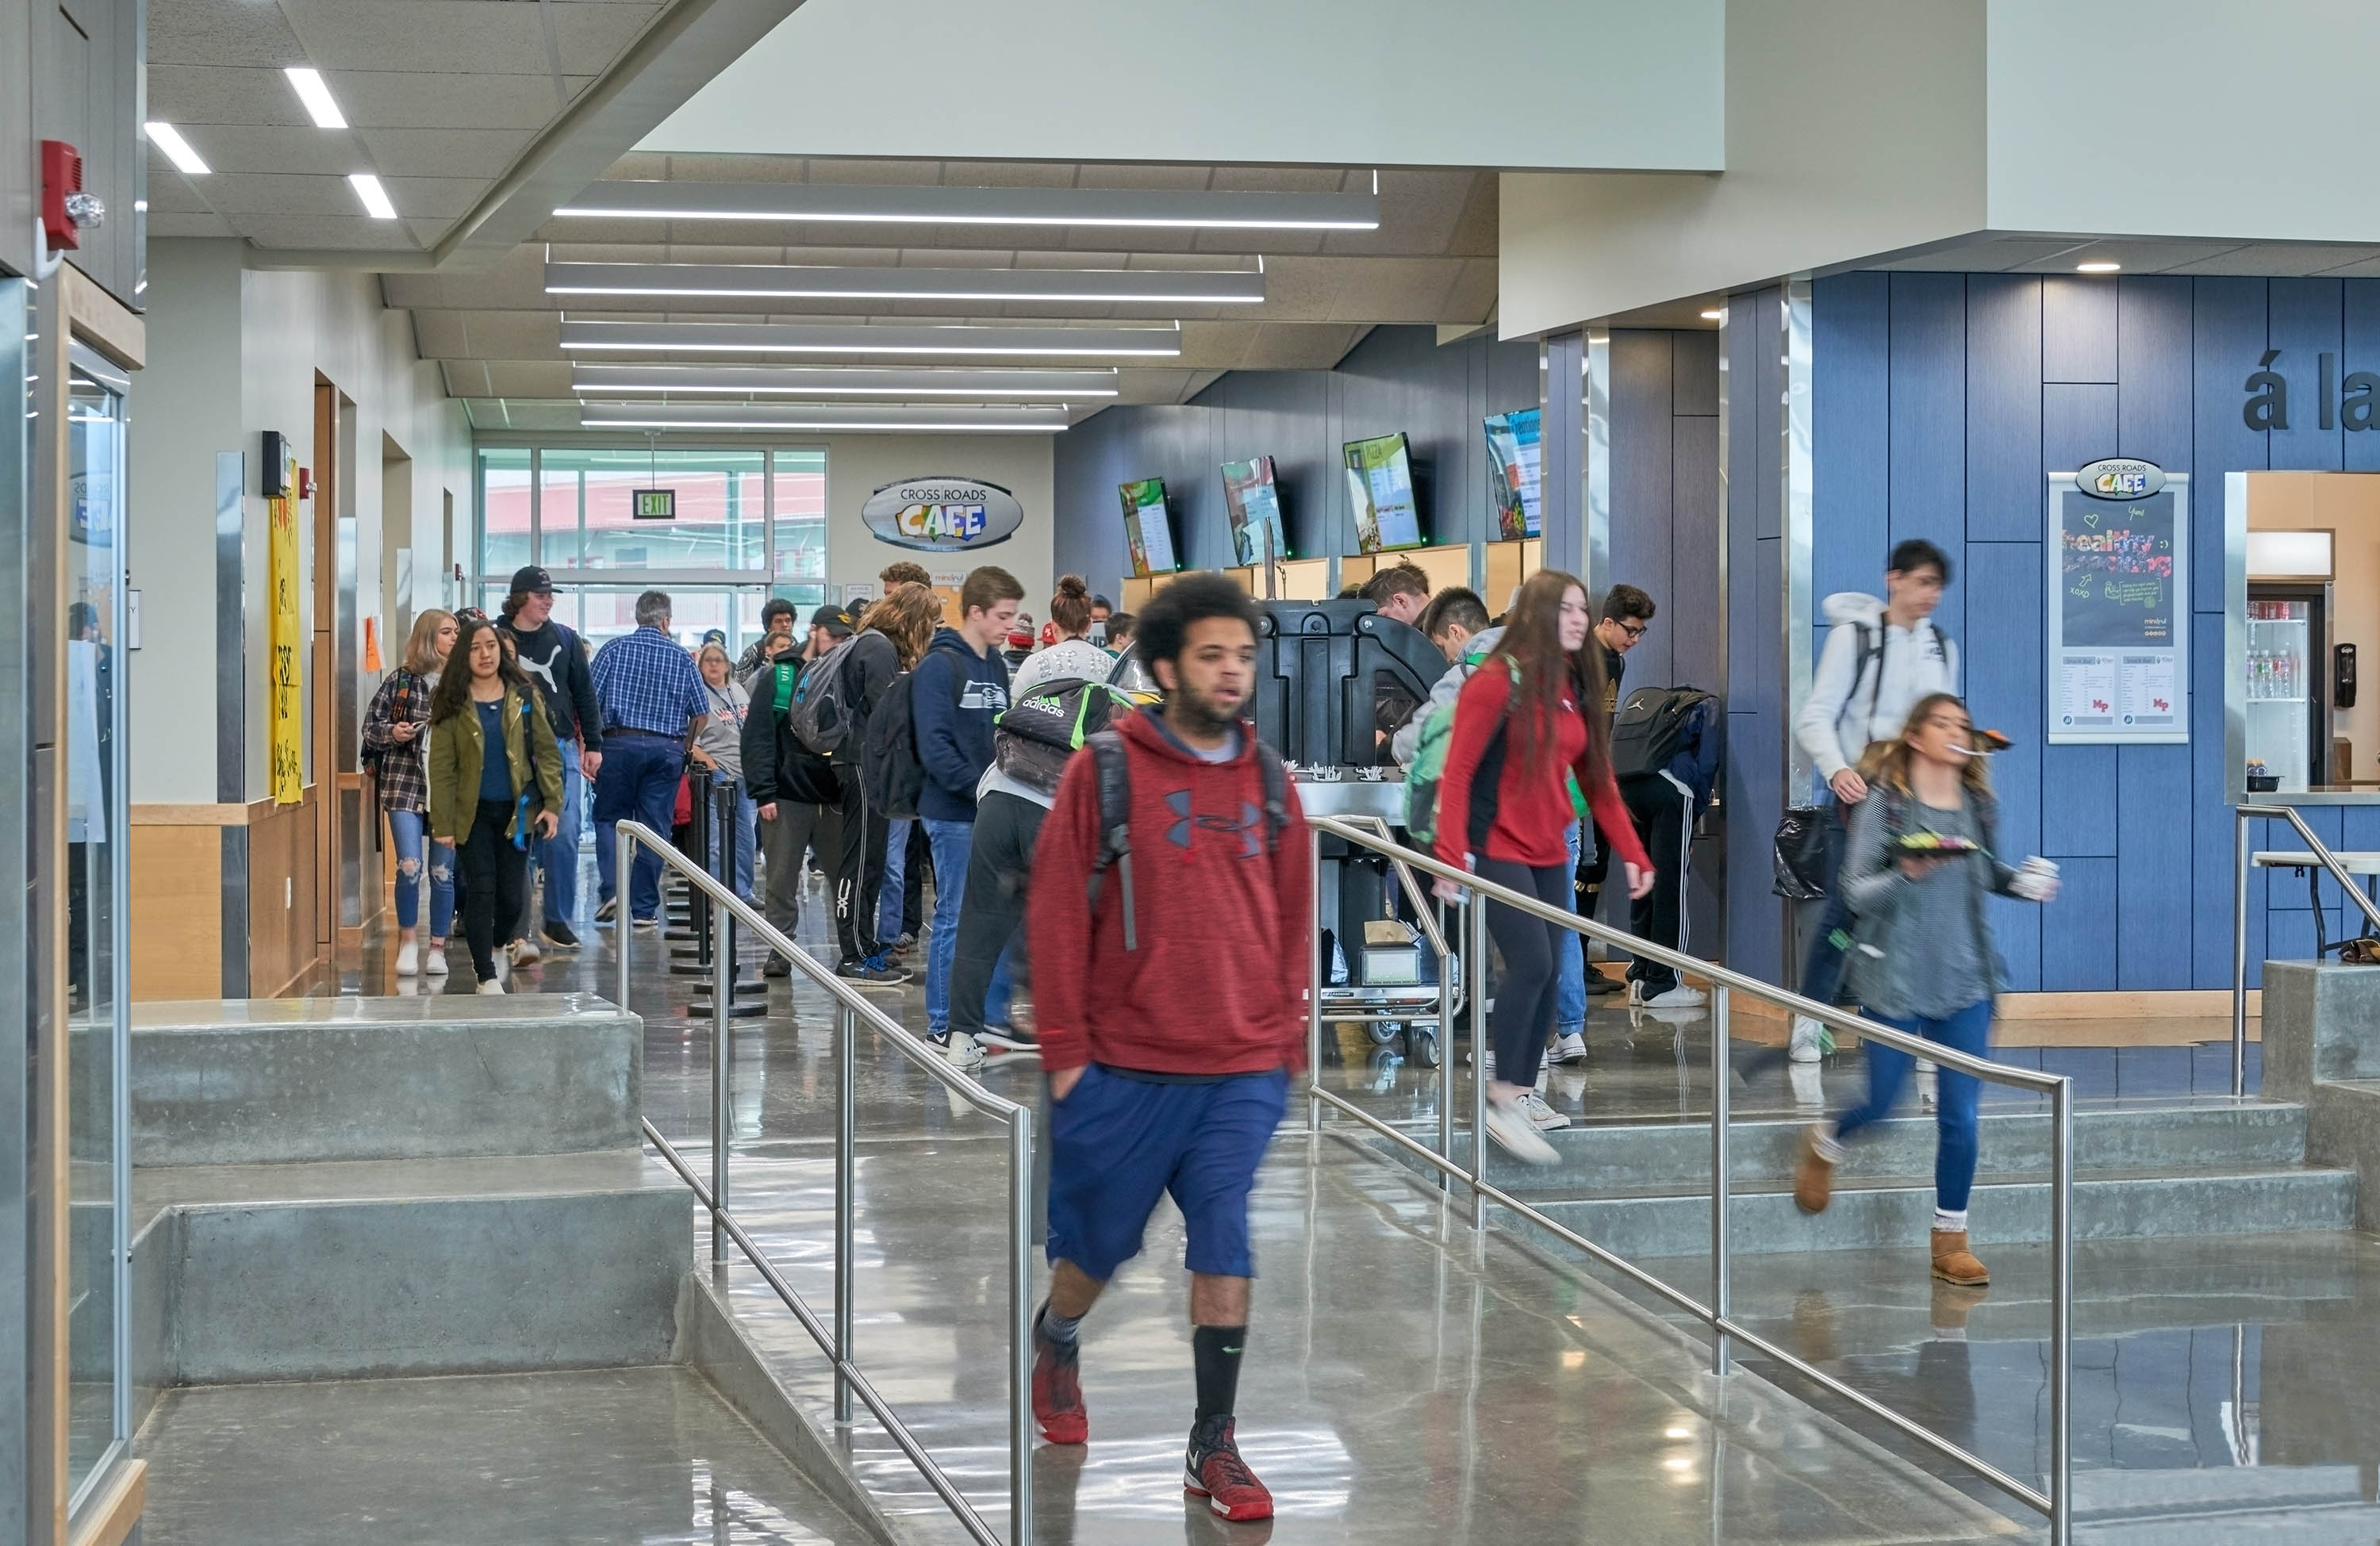 Students entering the Commons on the ramp and stairs.